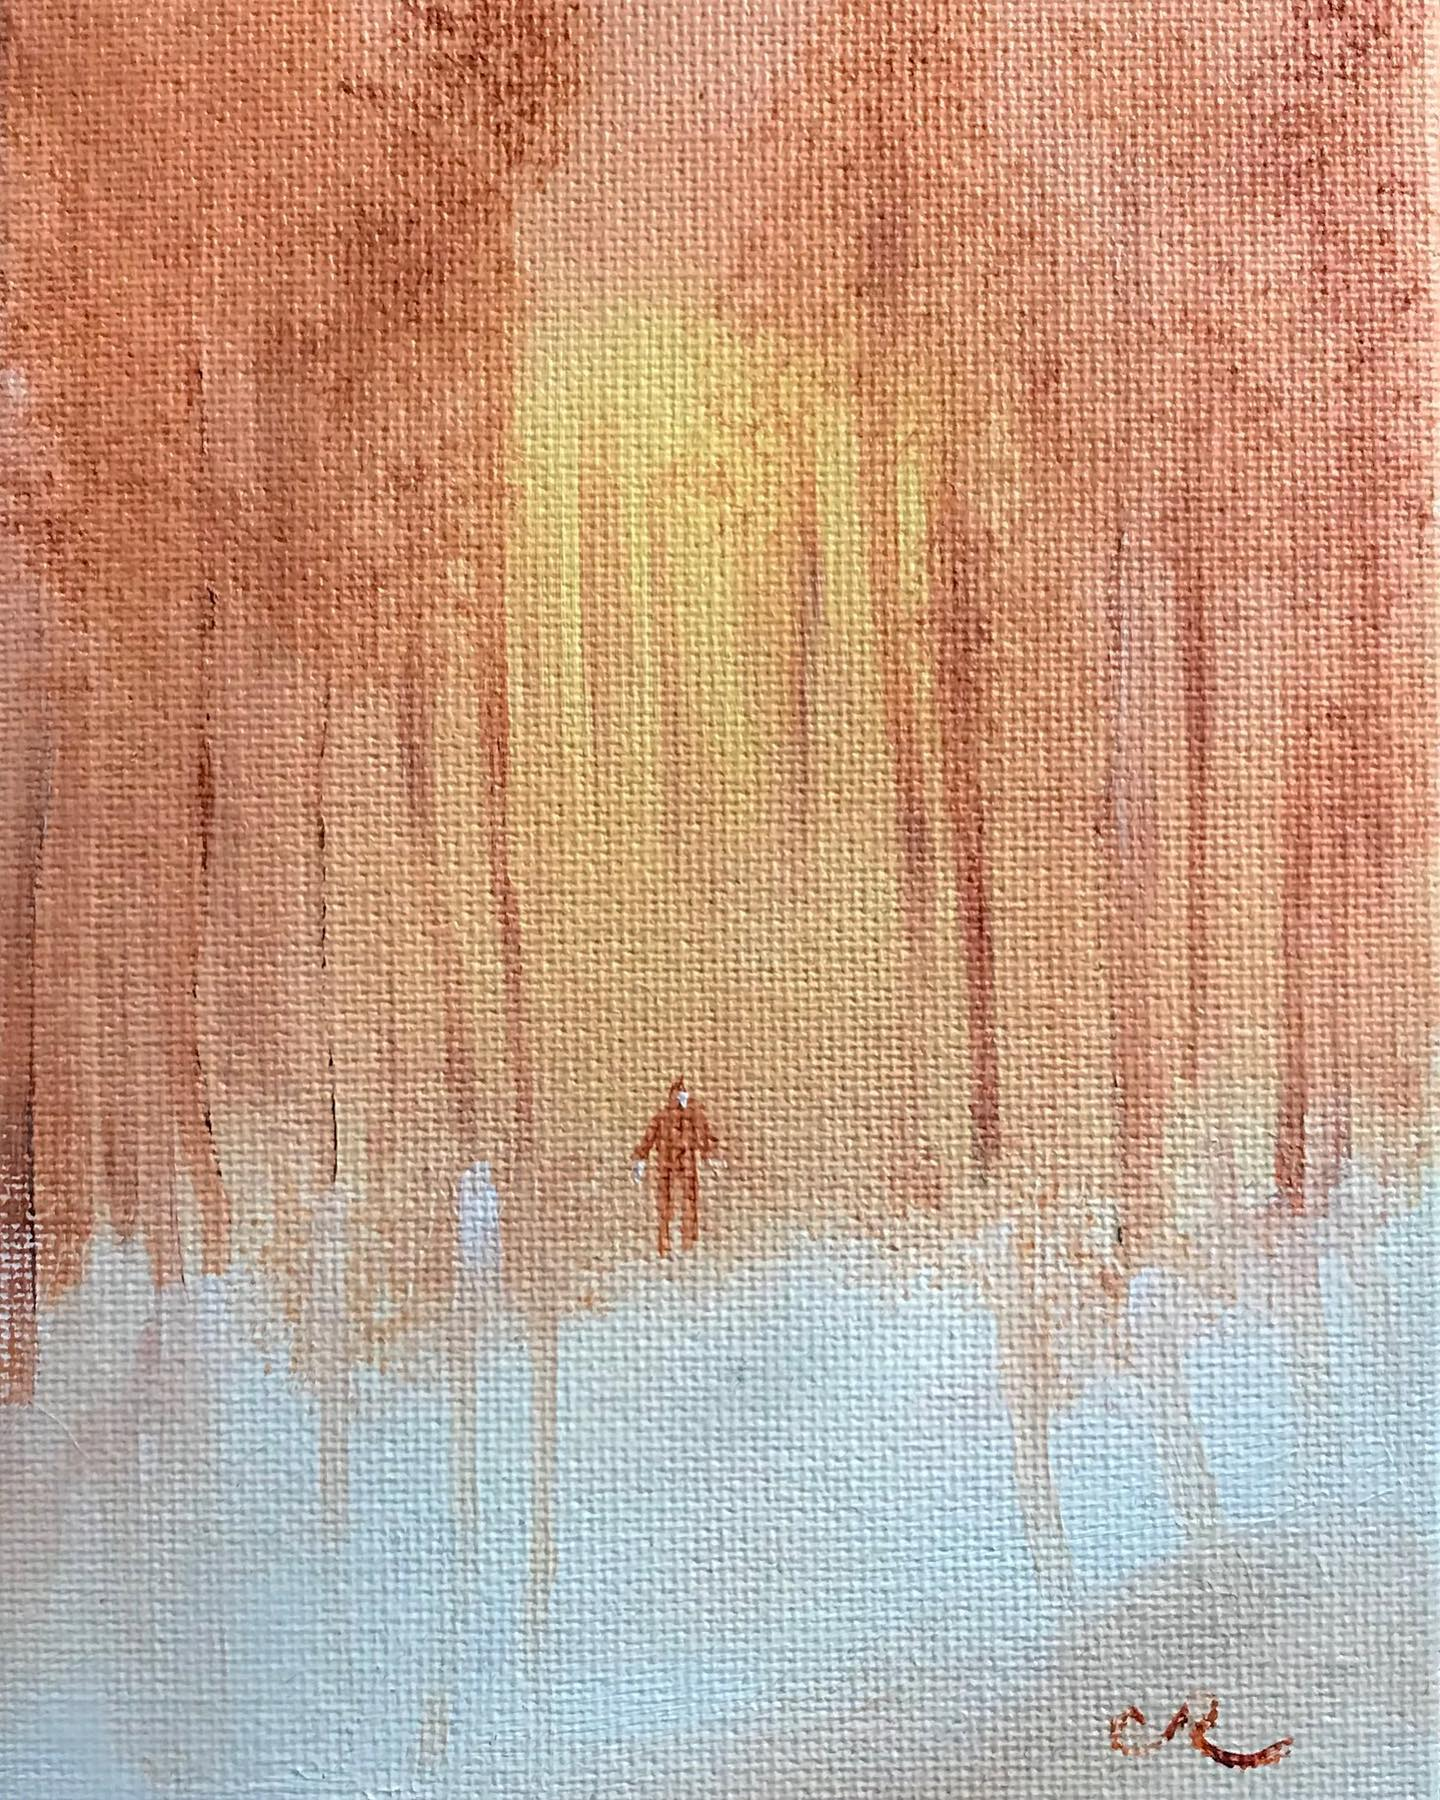 walk oil on panel by chris reecer